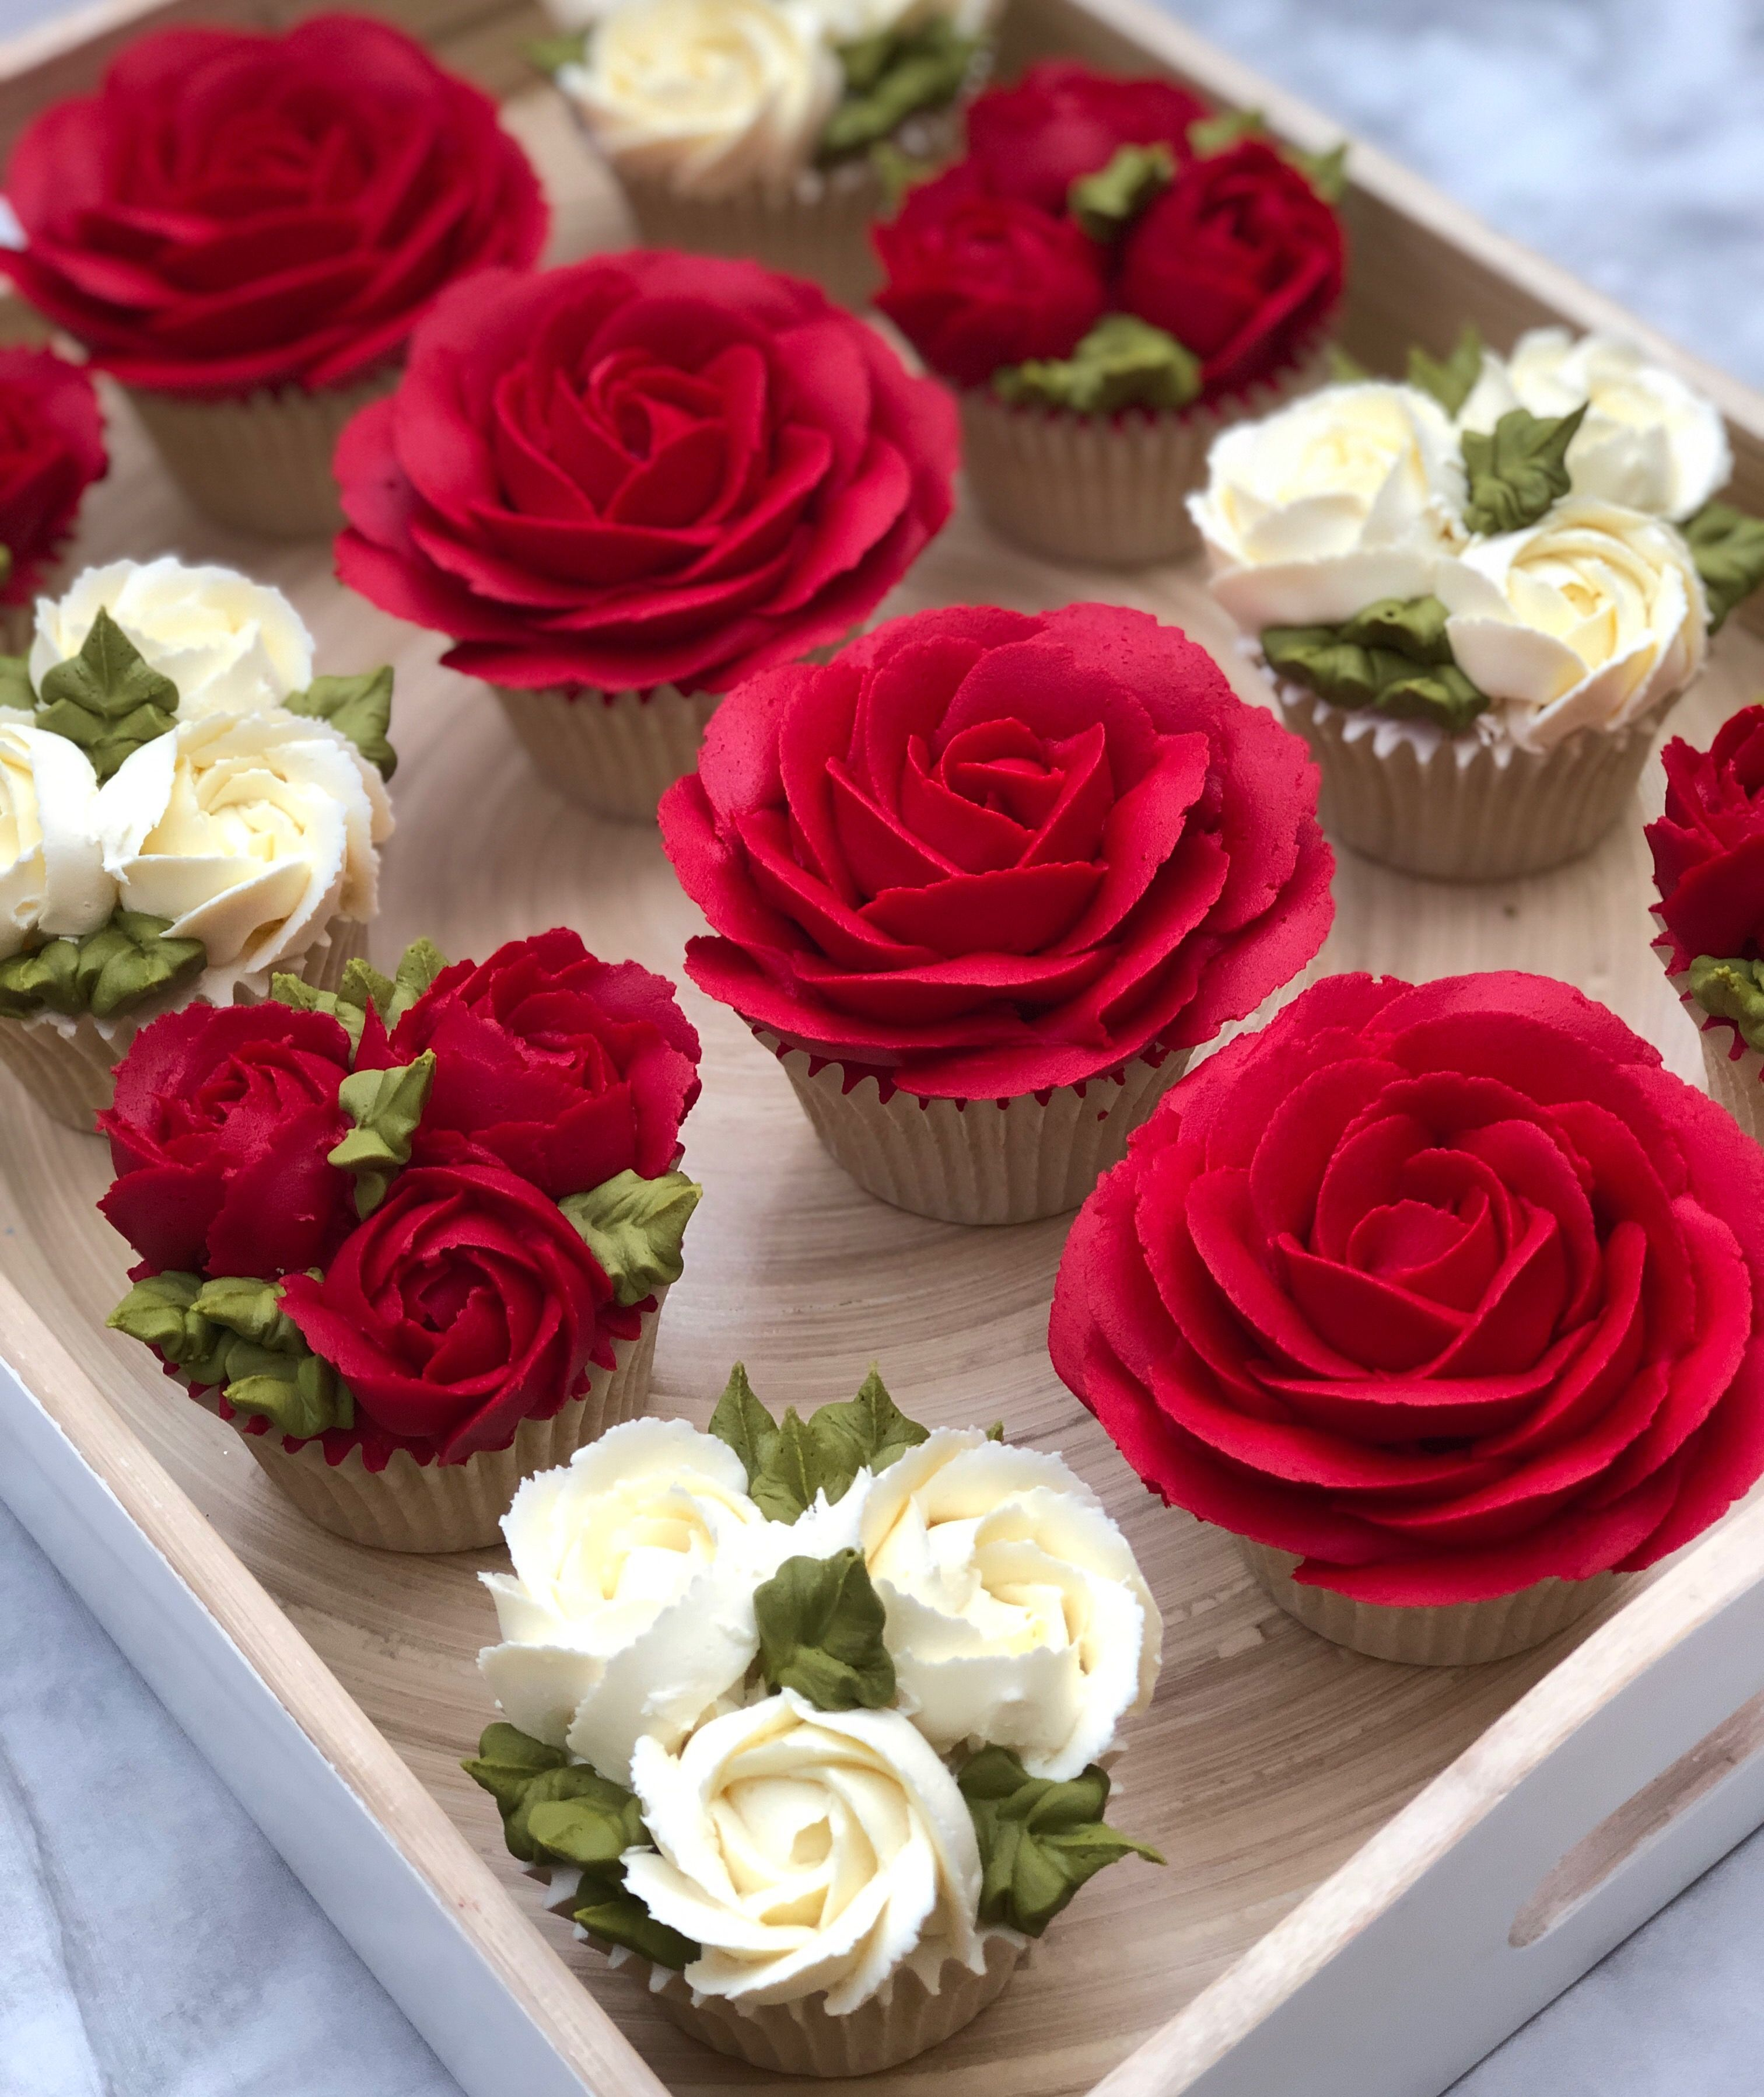 Learn how to make beautiful Red Buttercream Frosting  The Taylor Made Way with my easy to follow video tutorial cupcakes decoration hochzeit ideas ideen recipes rezepte c...